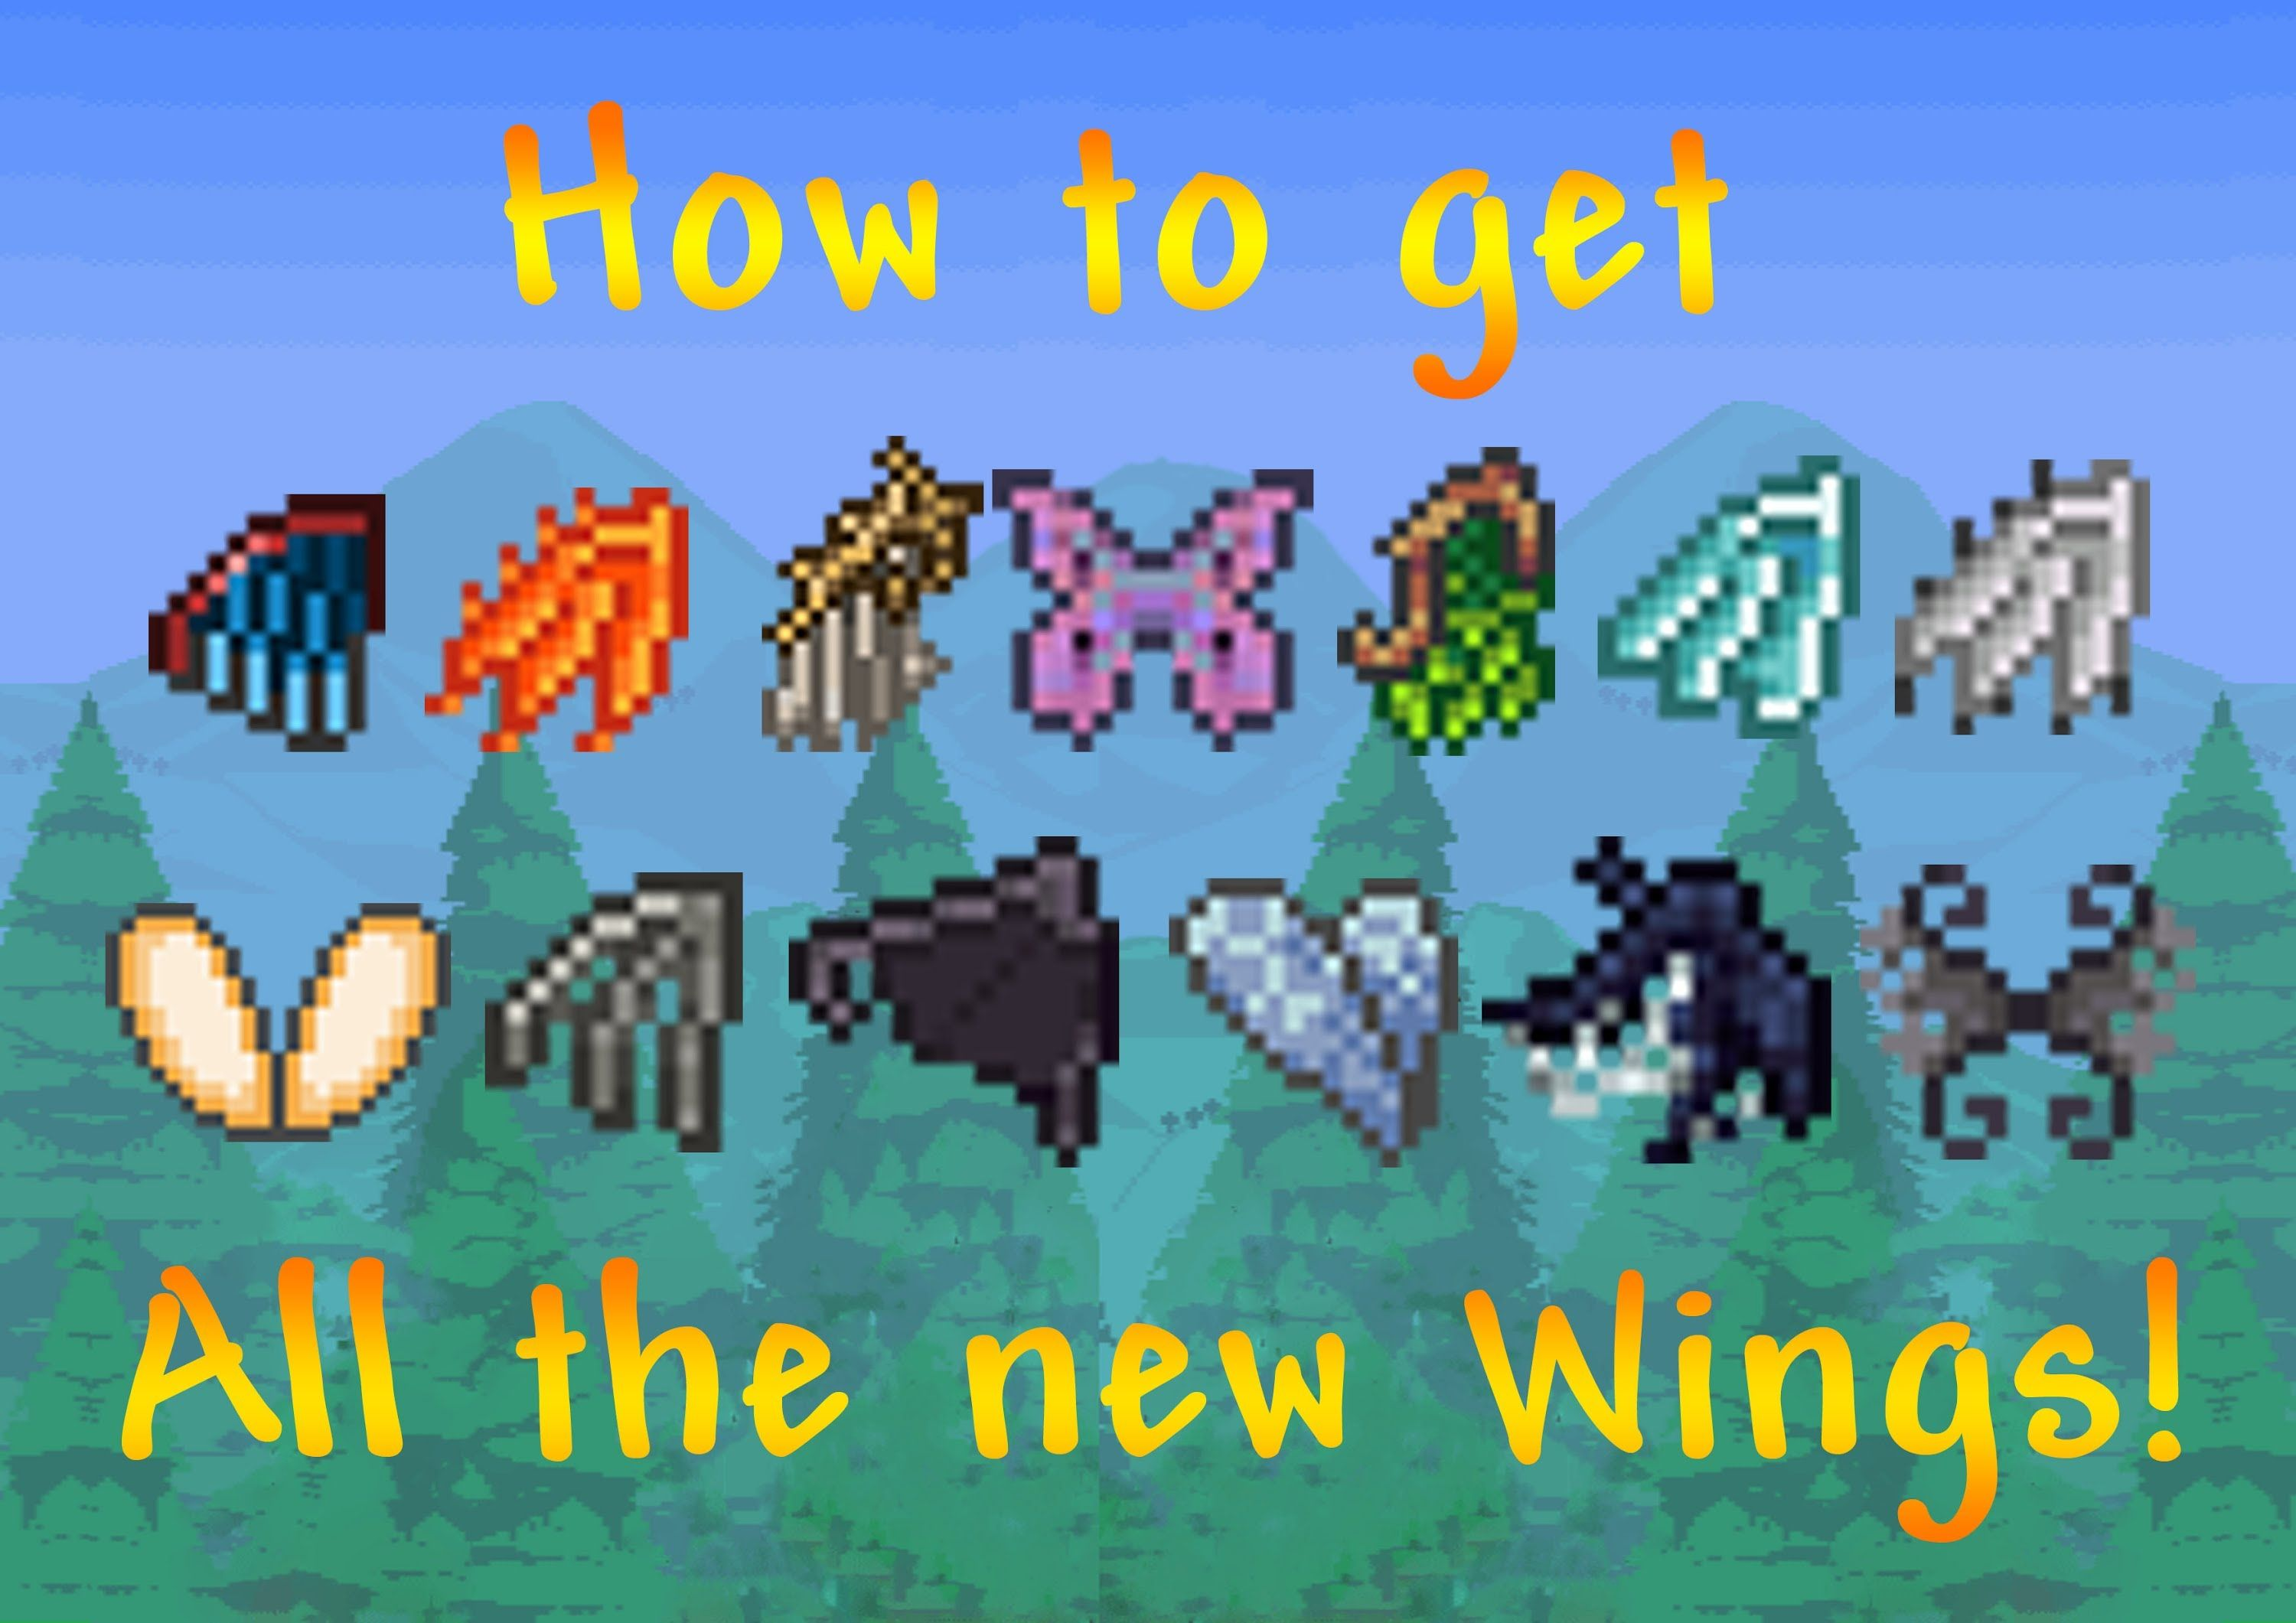 Terraria How To Get All The New Wings Benyhild Terrarium Terraria Party Terraria Tips